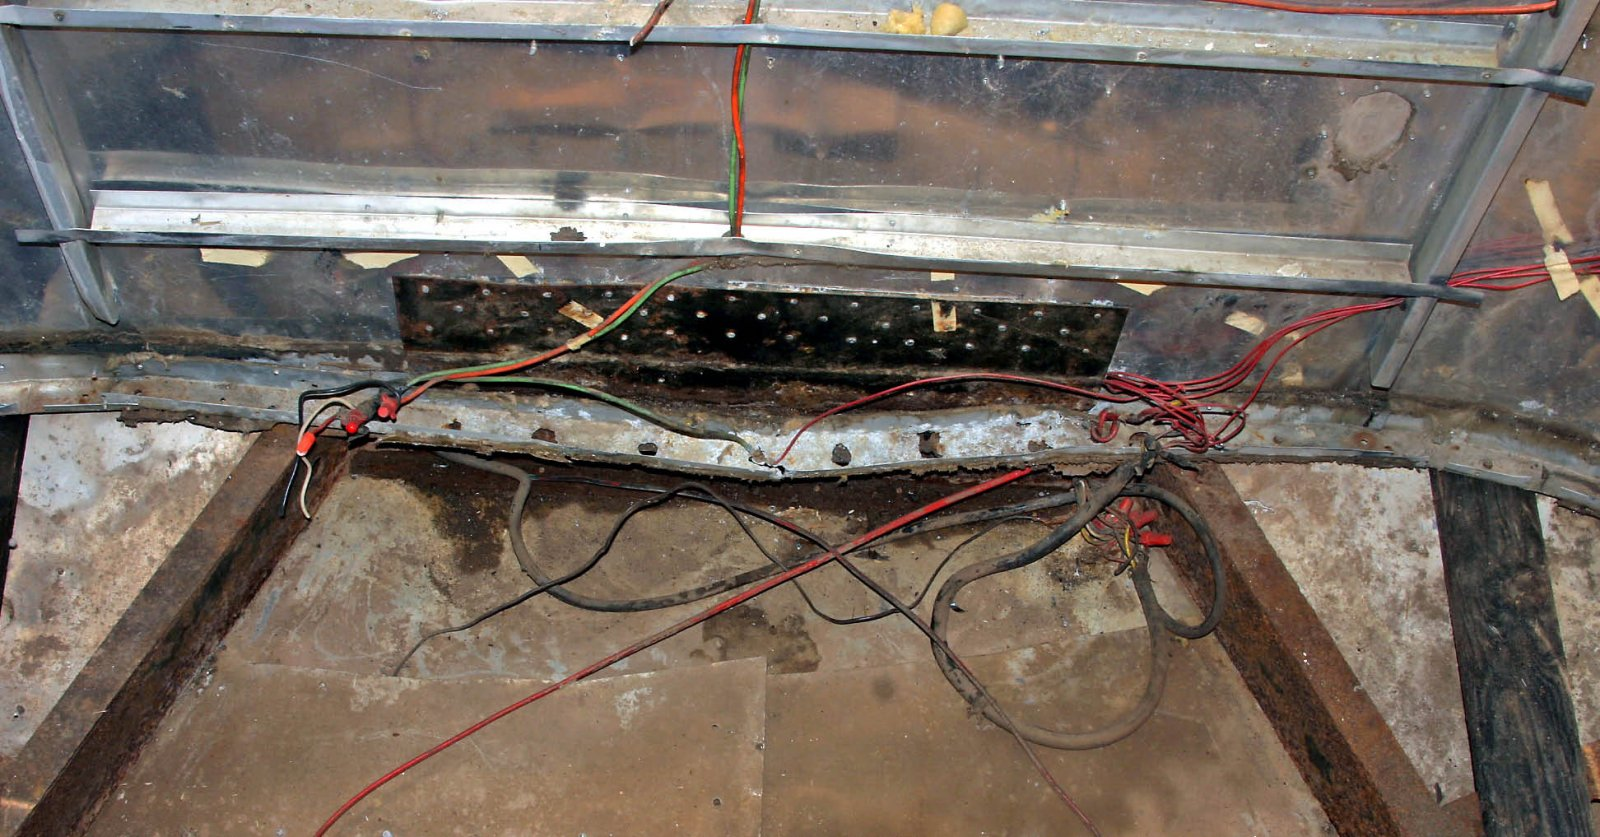 Click image for larger version  Name:front 12V wiring mess.jpg Views:76 Size:278.8 KB ID:180394